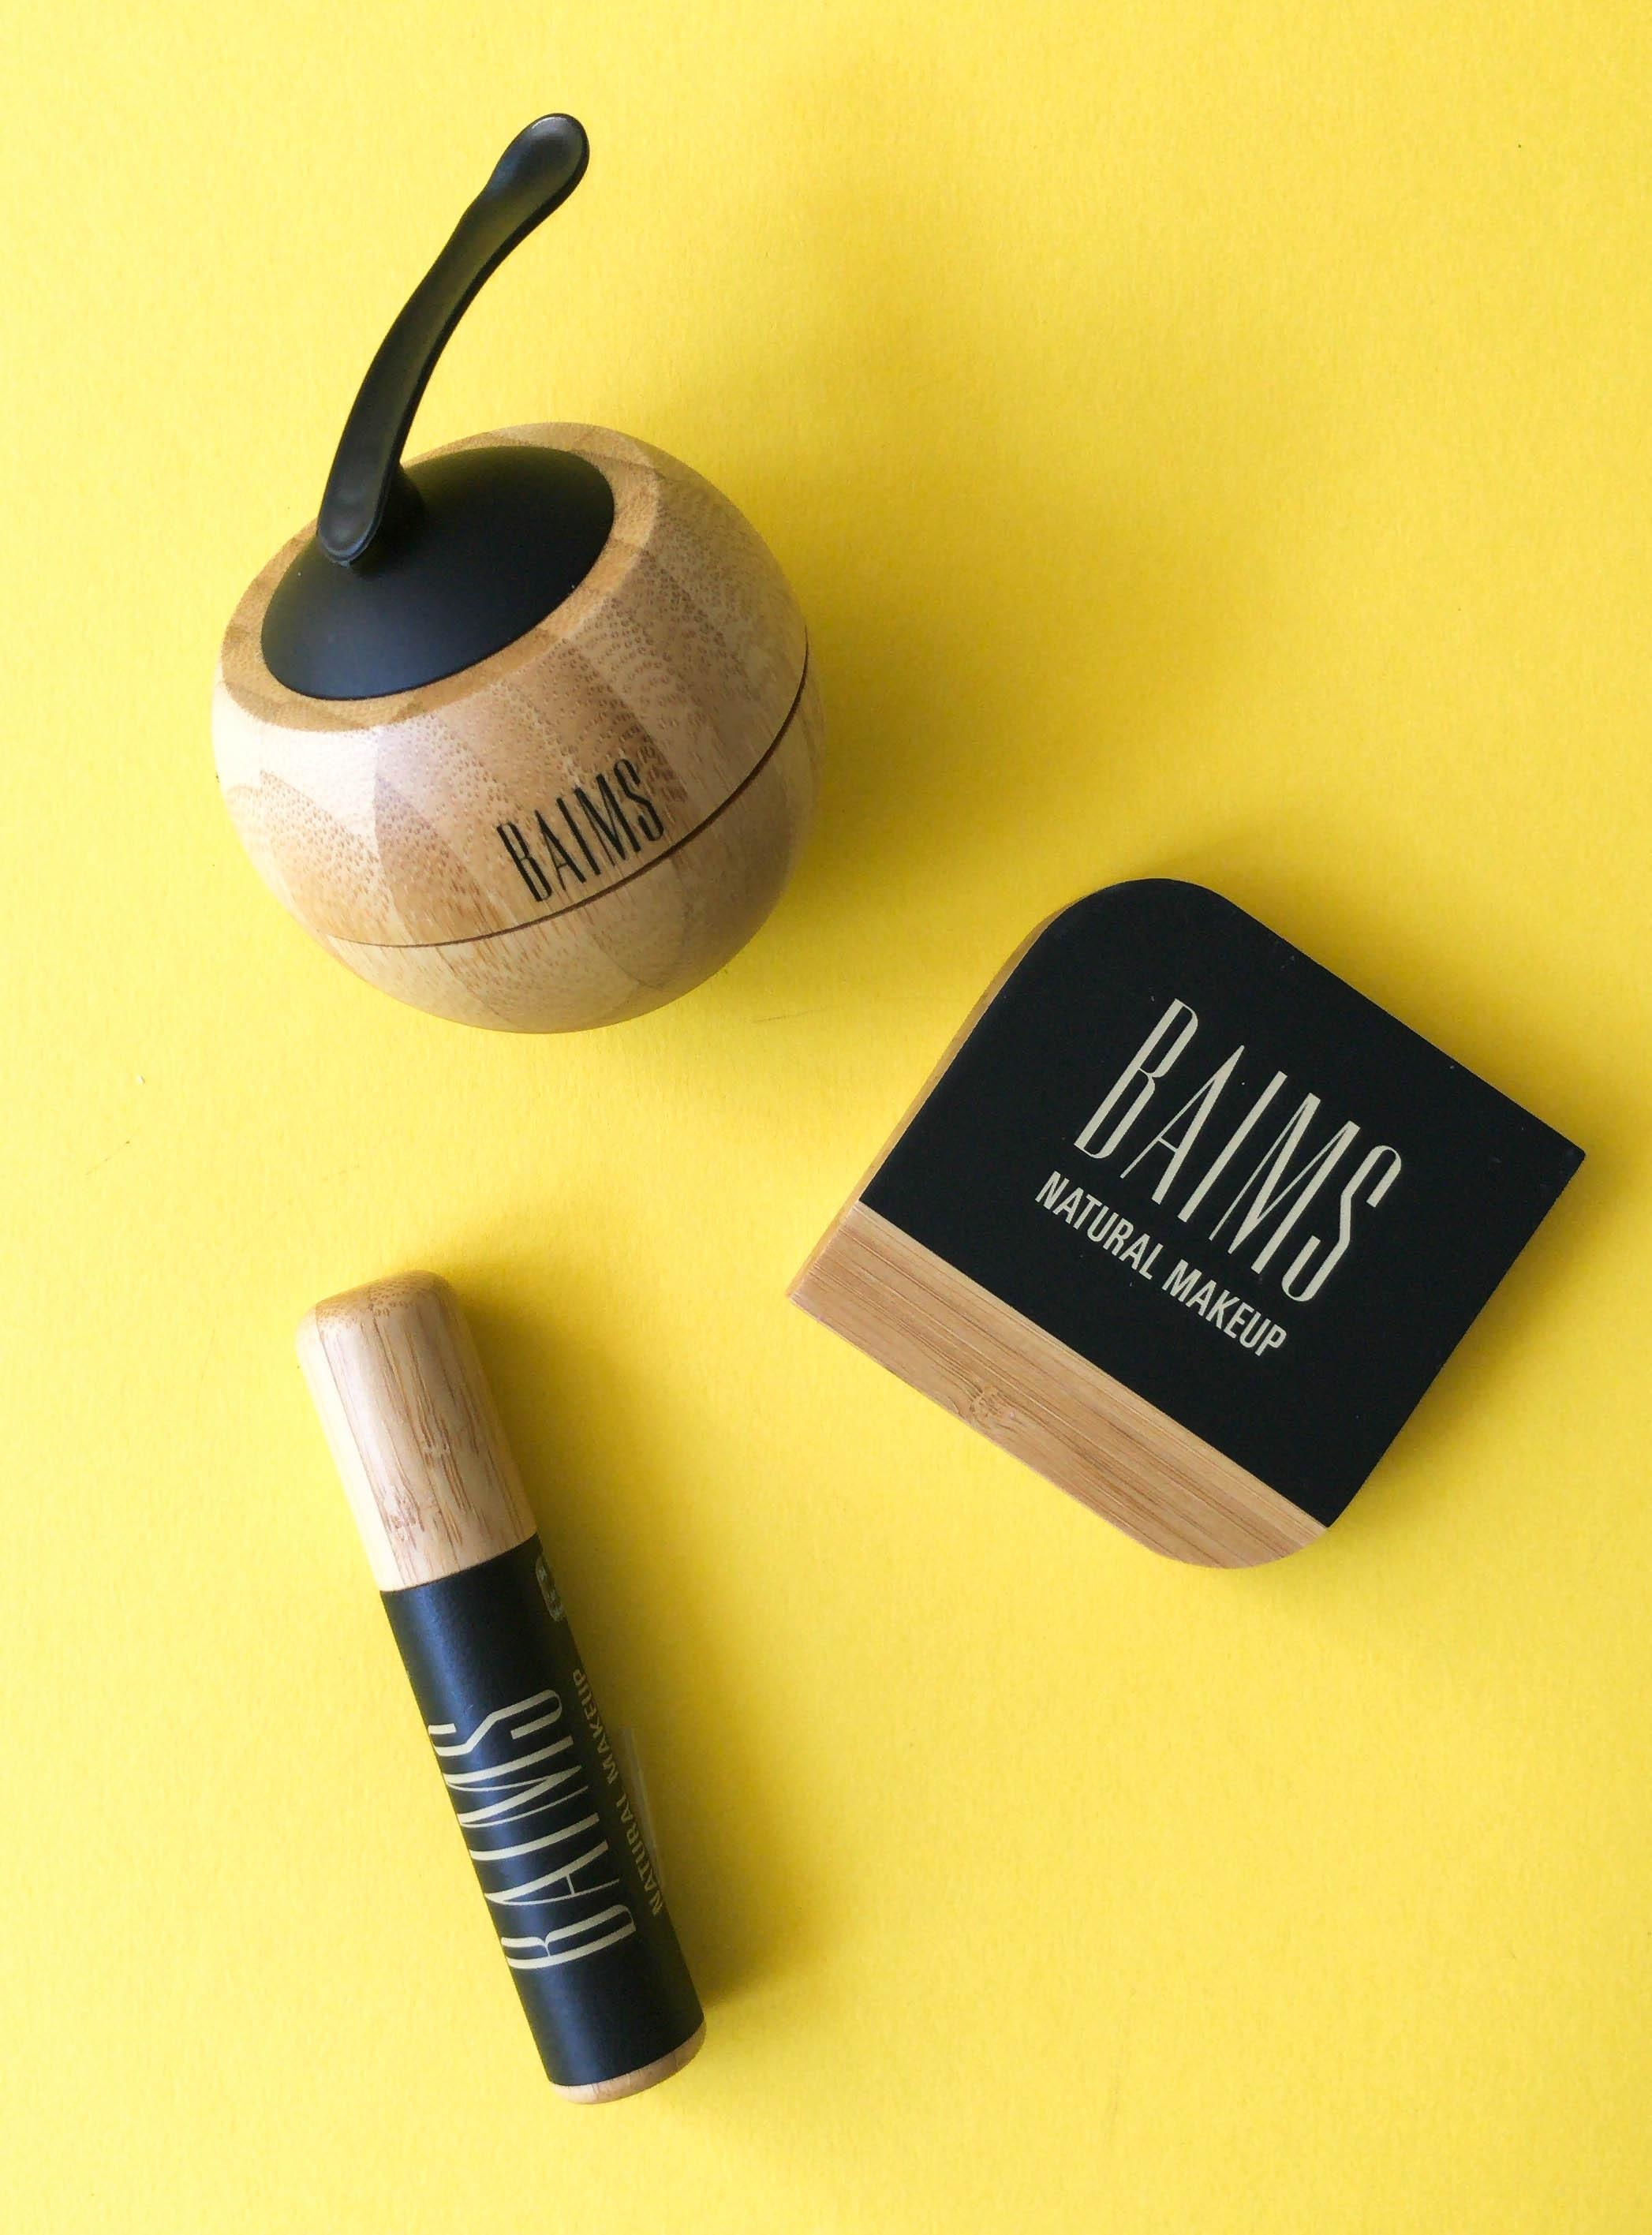 Vegan, aus natürlichen Inhaltsstoffen und nachfüllbar: Make-up Produkte von Baims! 